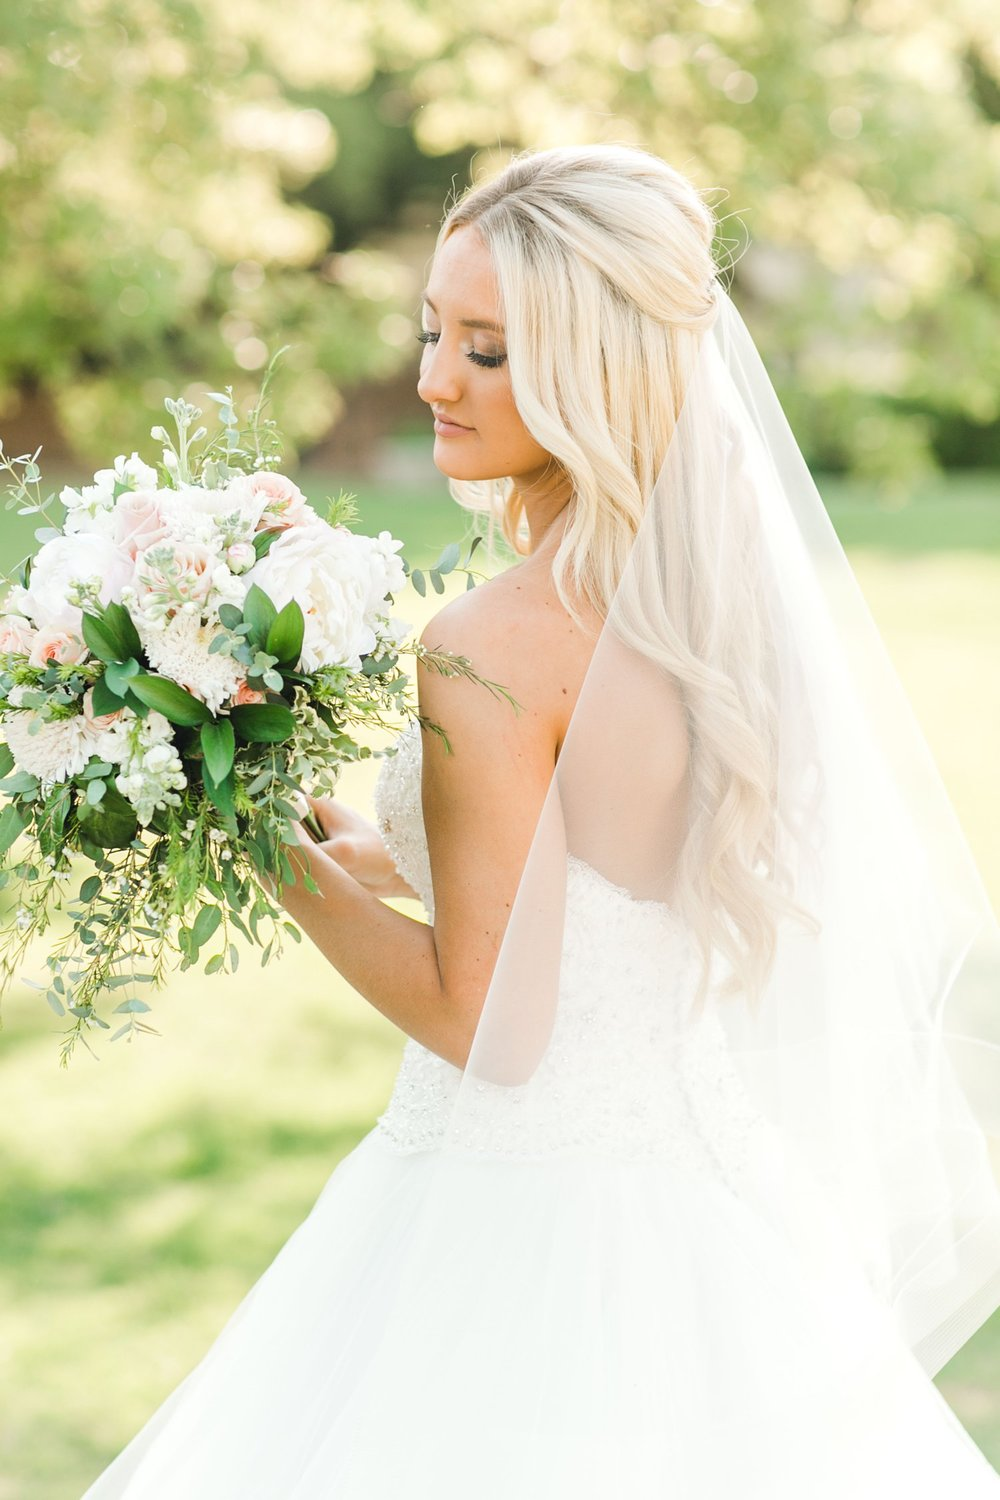 MADI_WRIGHT_BRIDALS_ALLEEJ_LUBBOCK_PHOTOGRAPHER0012.jpg